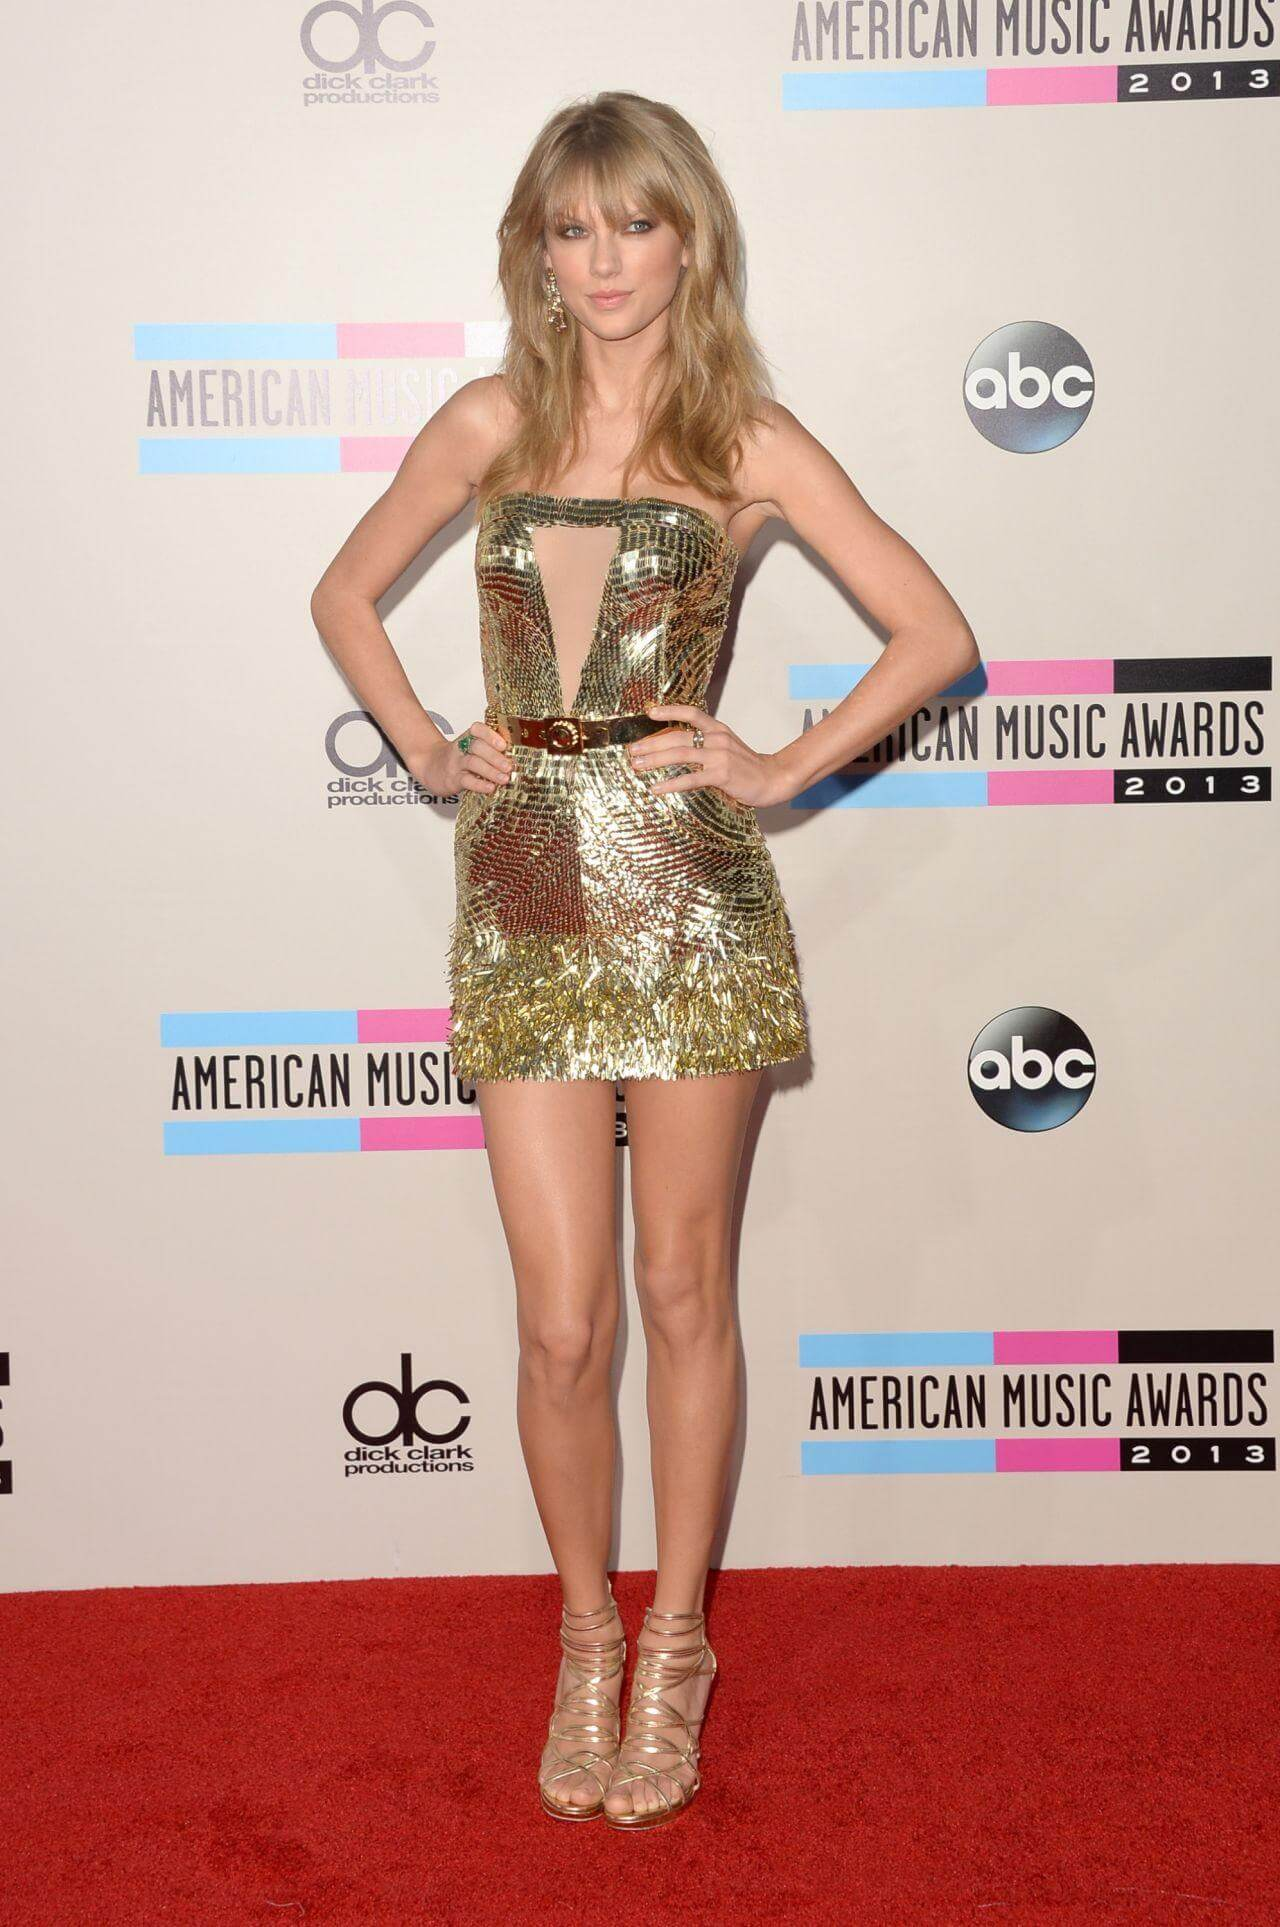 taylor swift hot look (1)